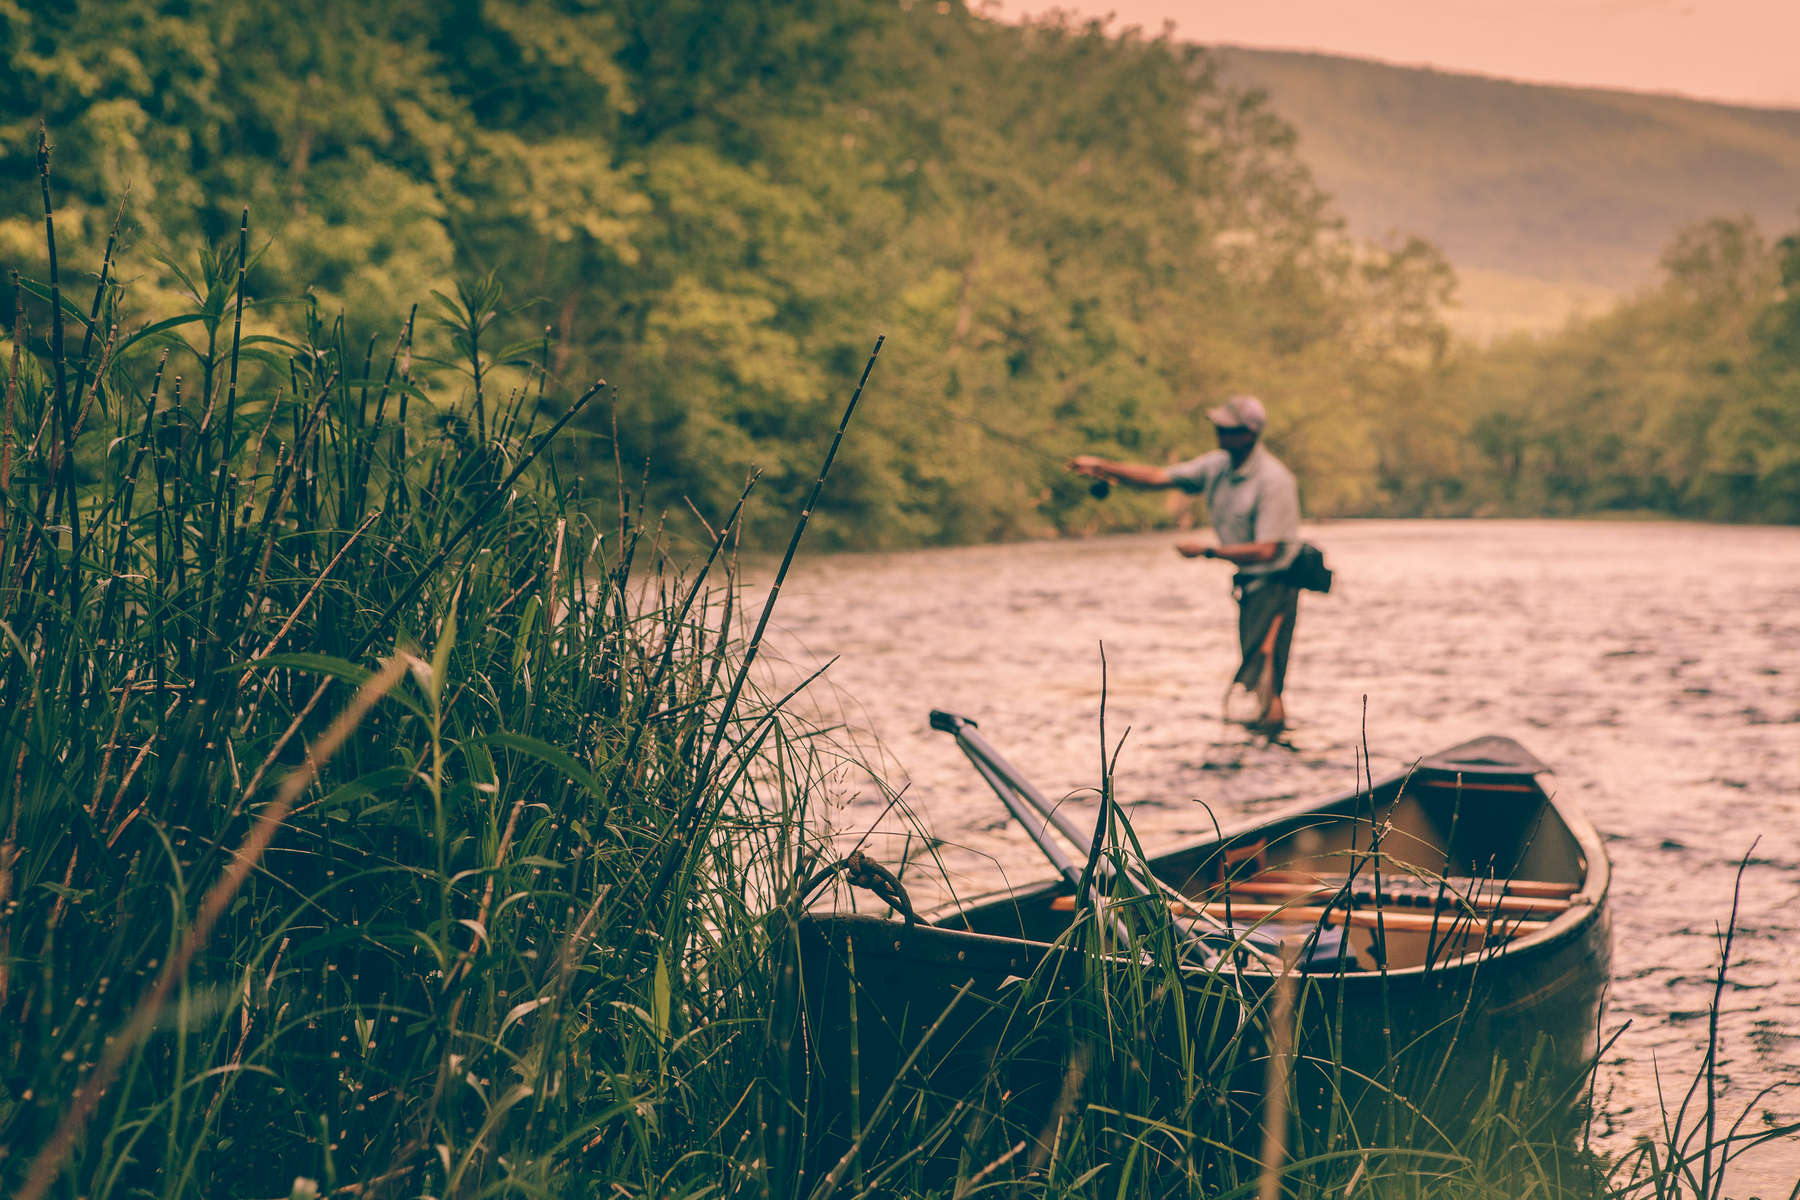 052616-298-jackson-river-trout-fly-fishing